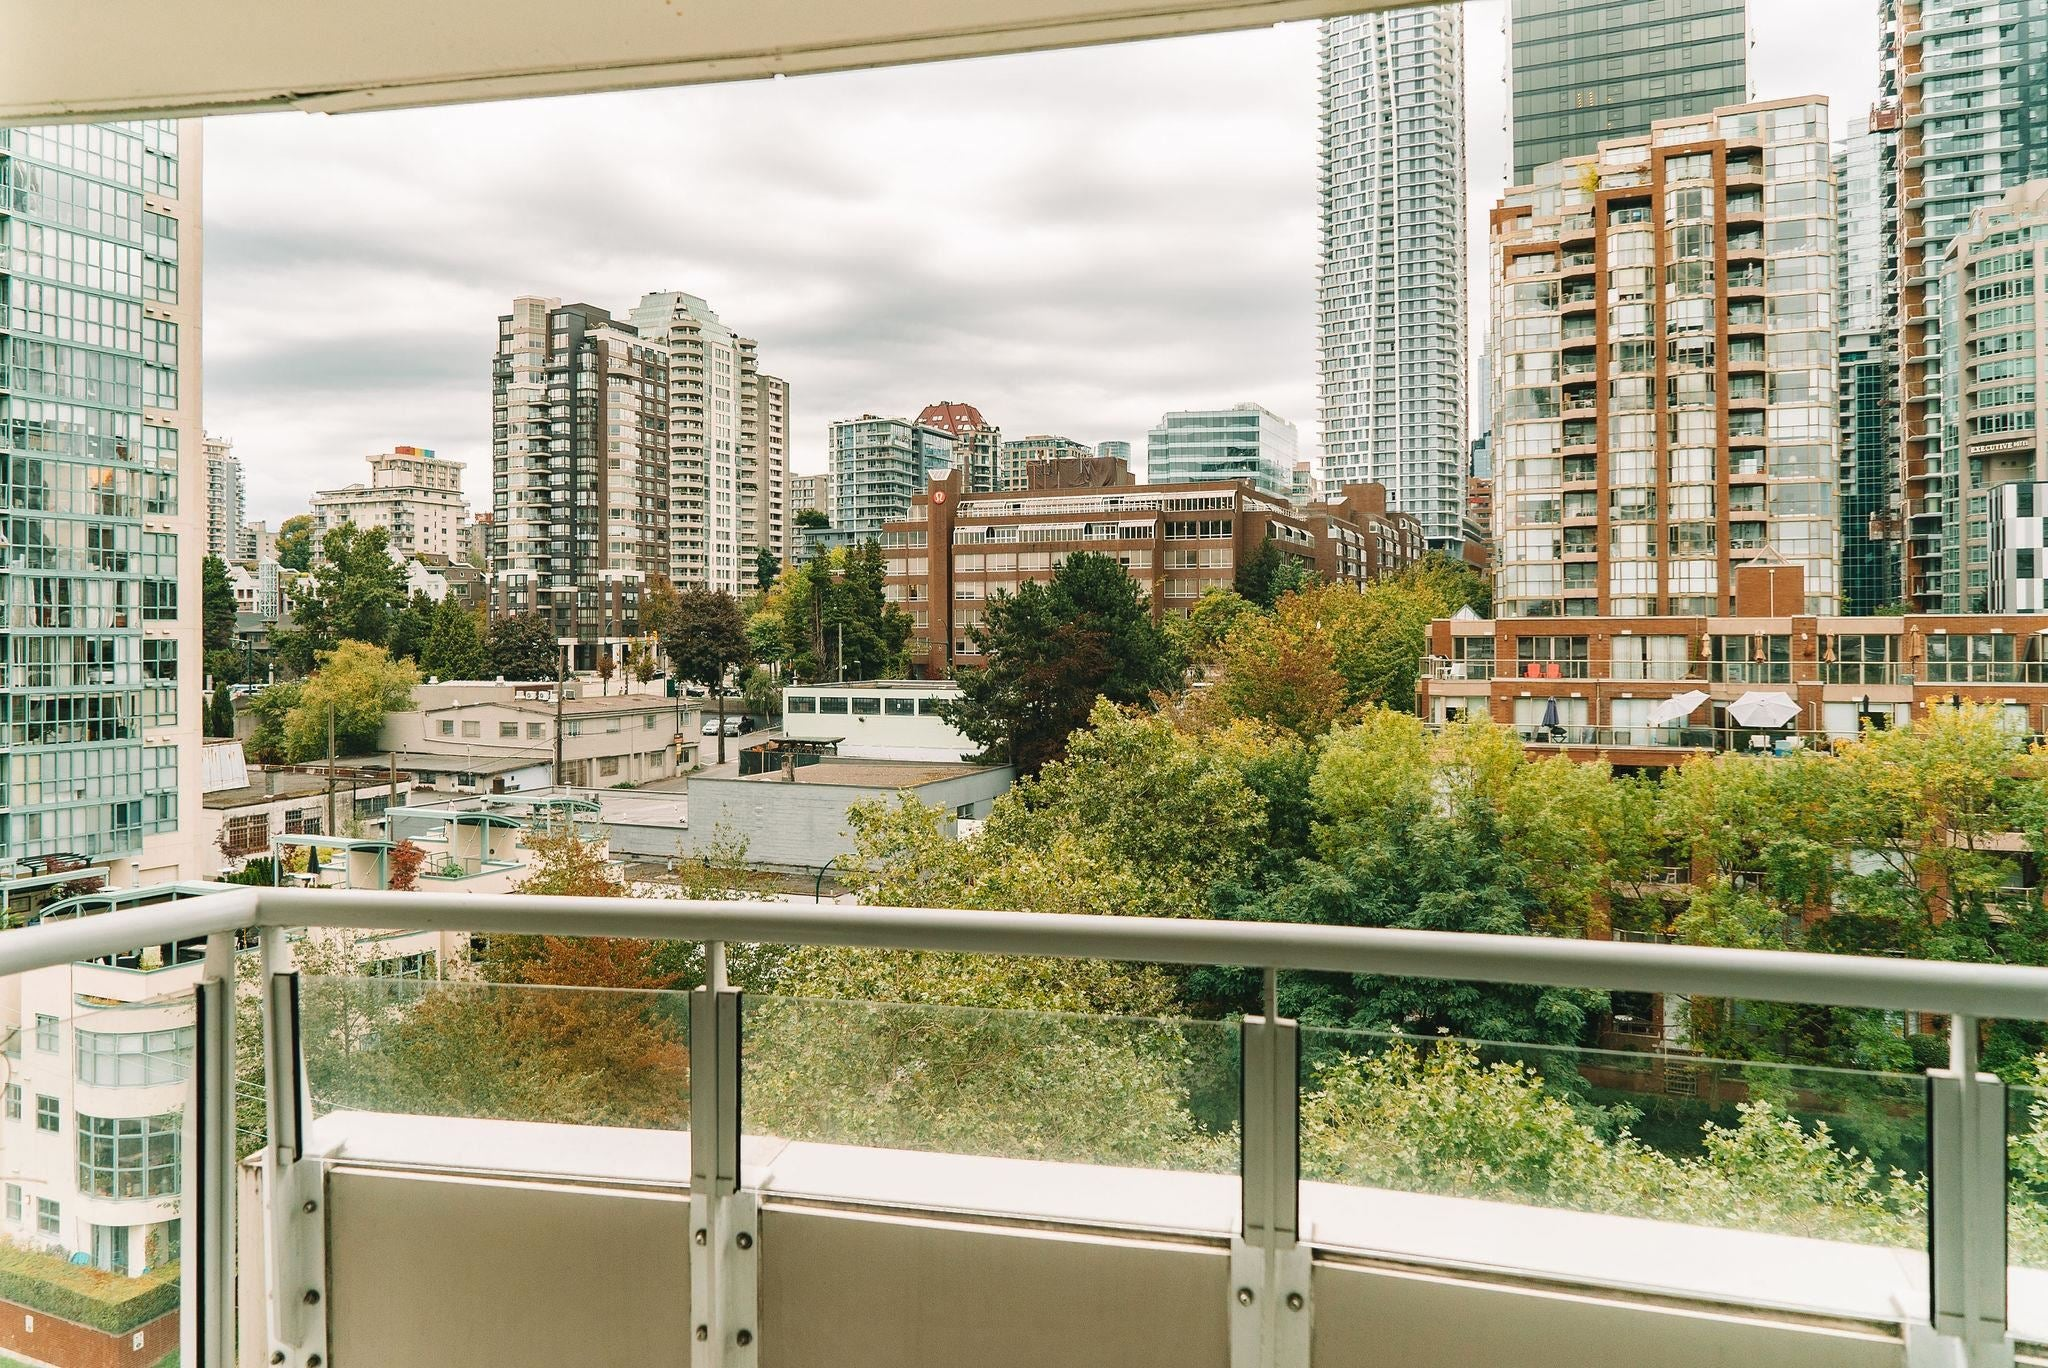 1009 1500 HORNBY STREET - Yaletown Apartment/Condo for sale, 2 Bedrooms (R2617441) - #11